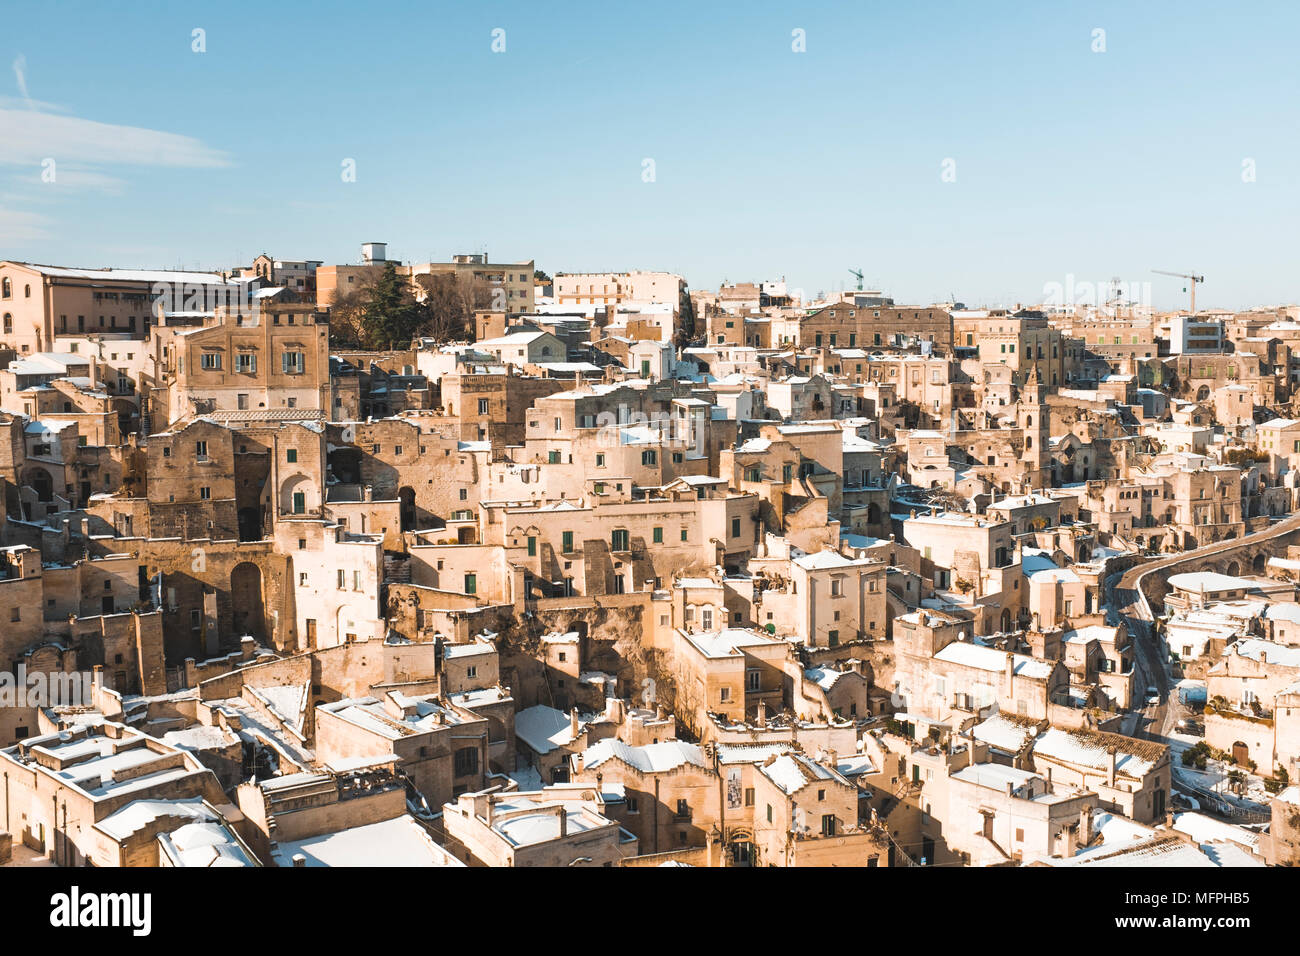 Ancient town of Matera in winter, Puglia, Italy - Stock Image